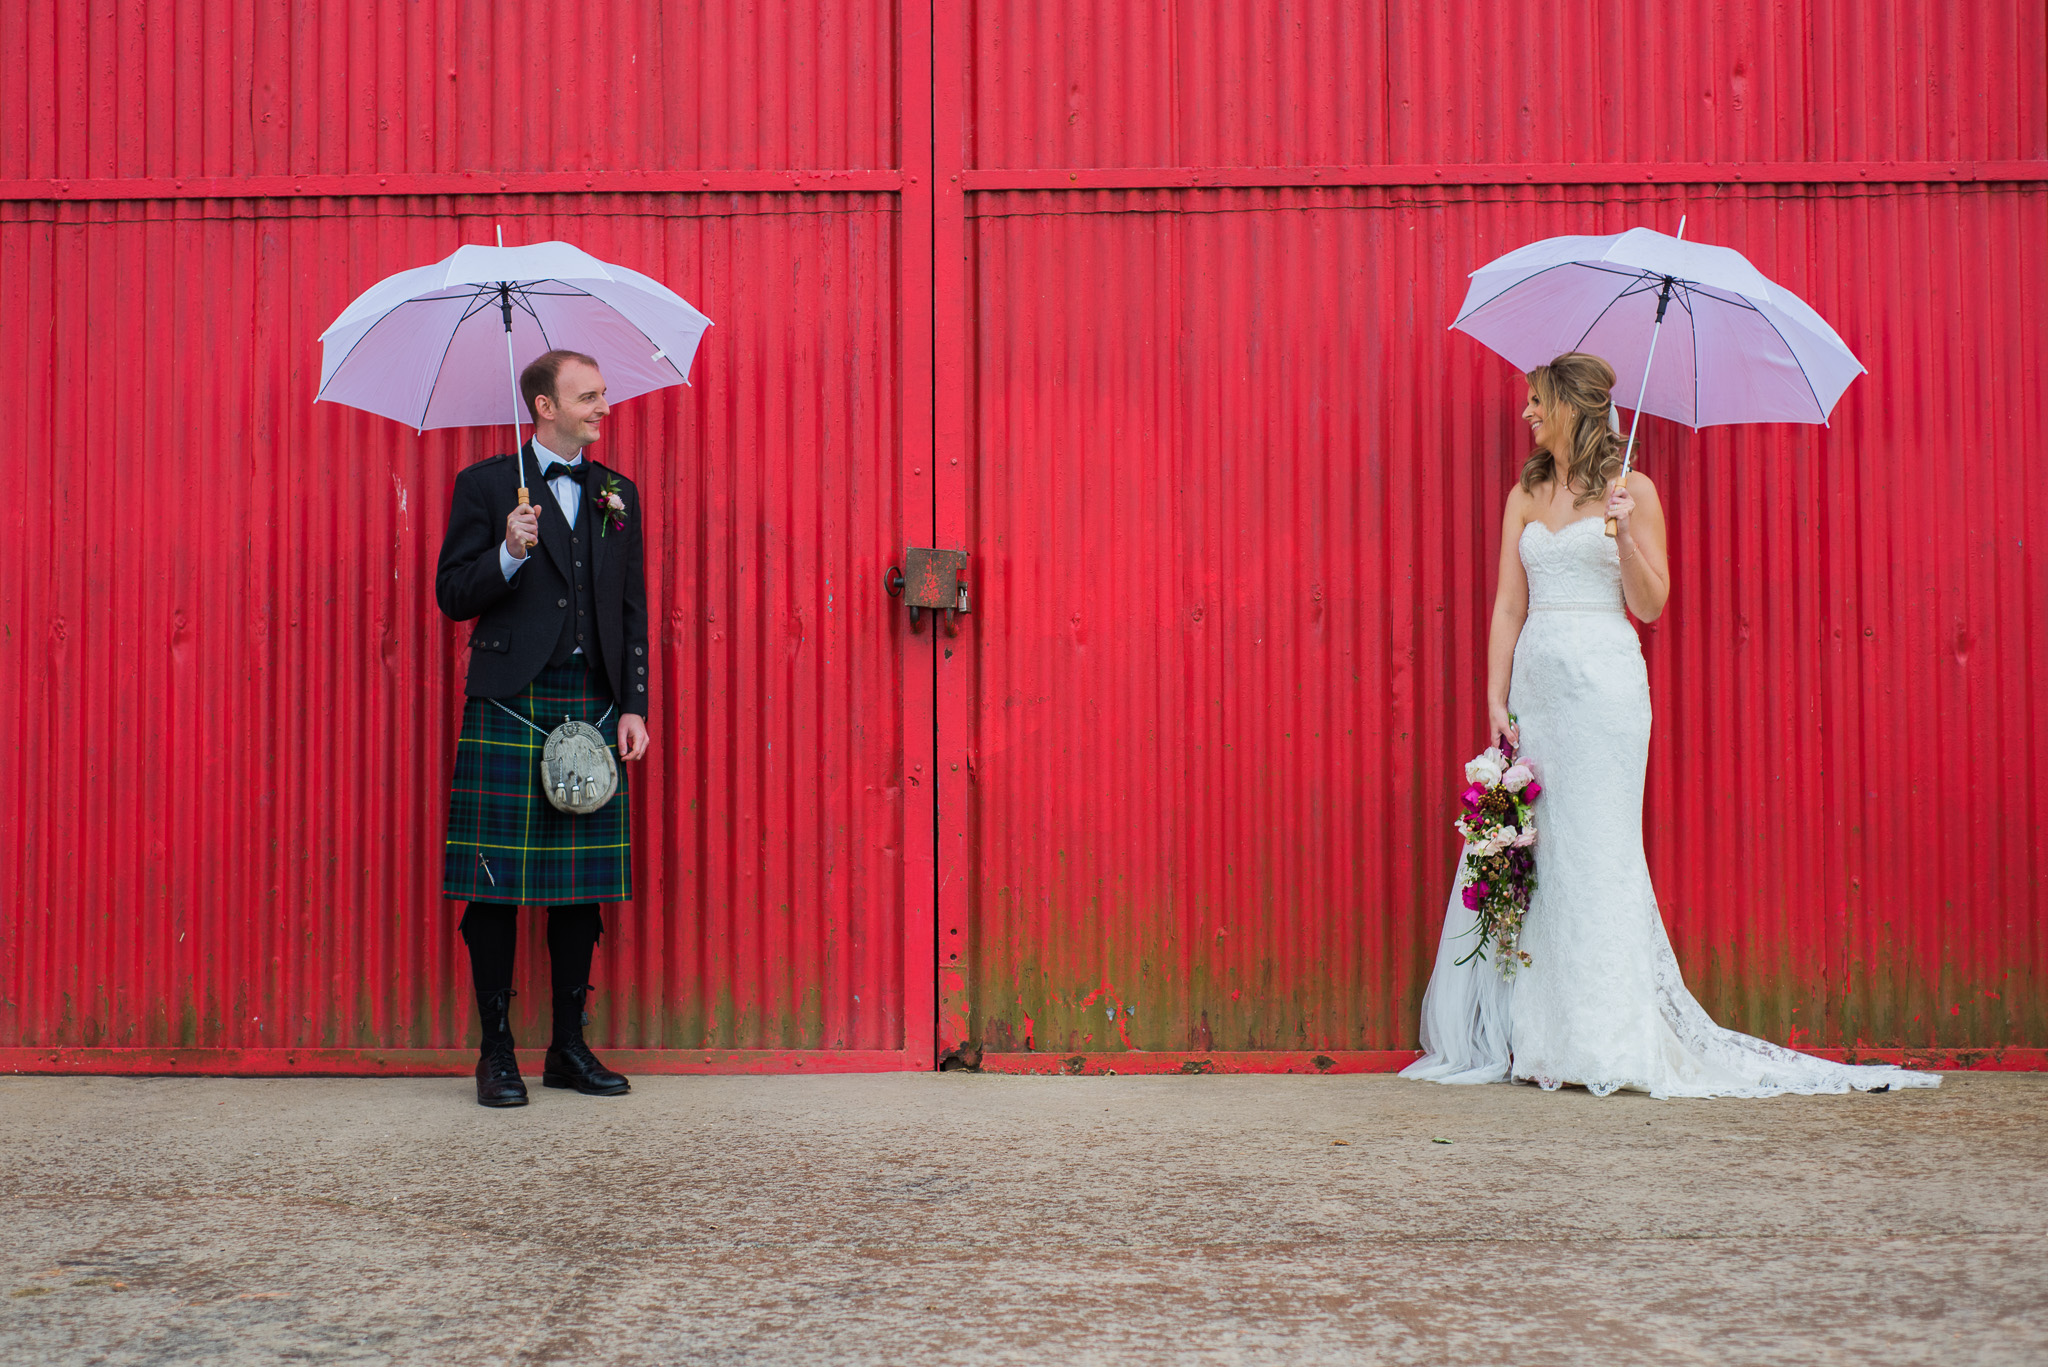 Umbrellas at Kinkell Byre Wedding